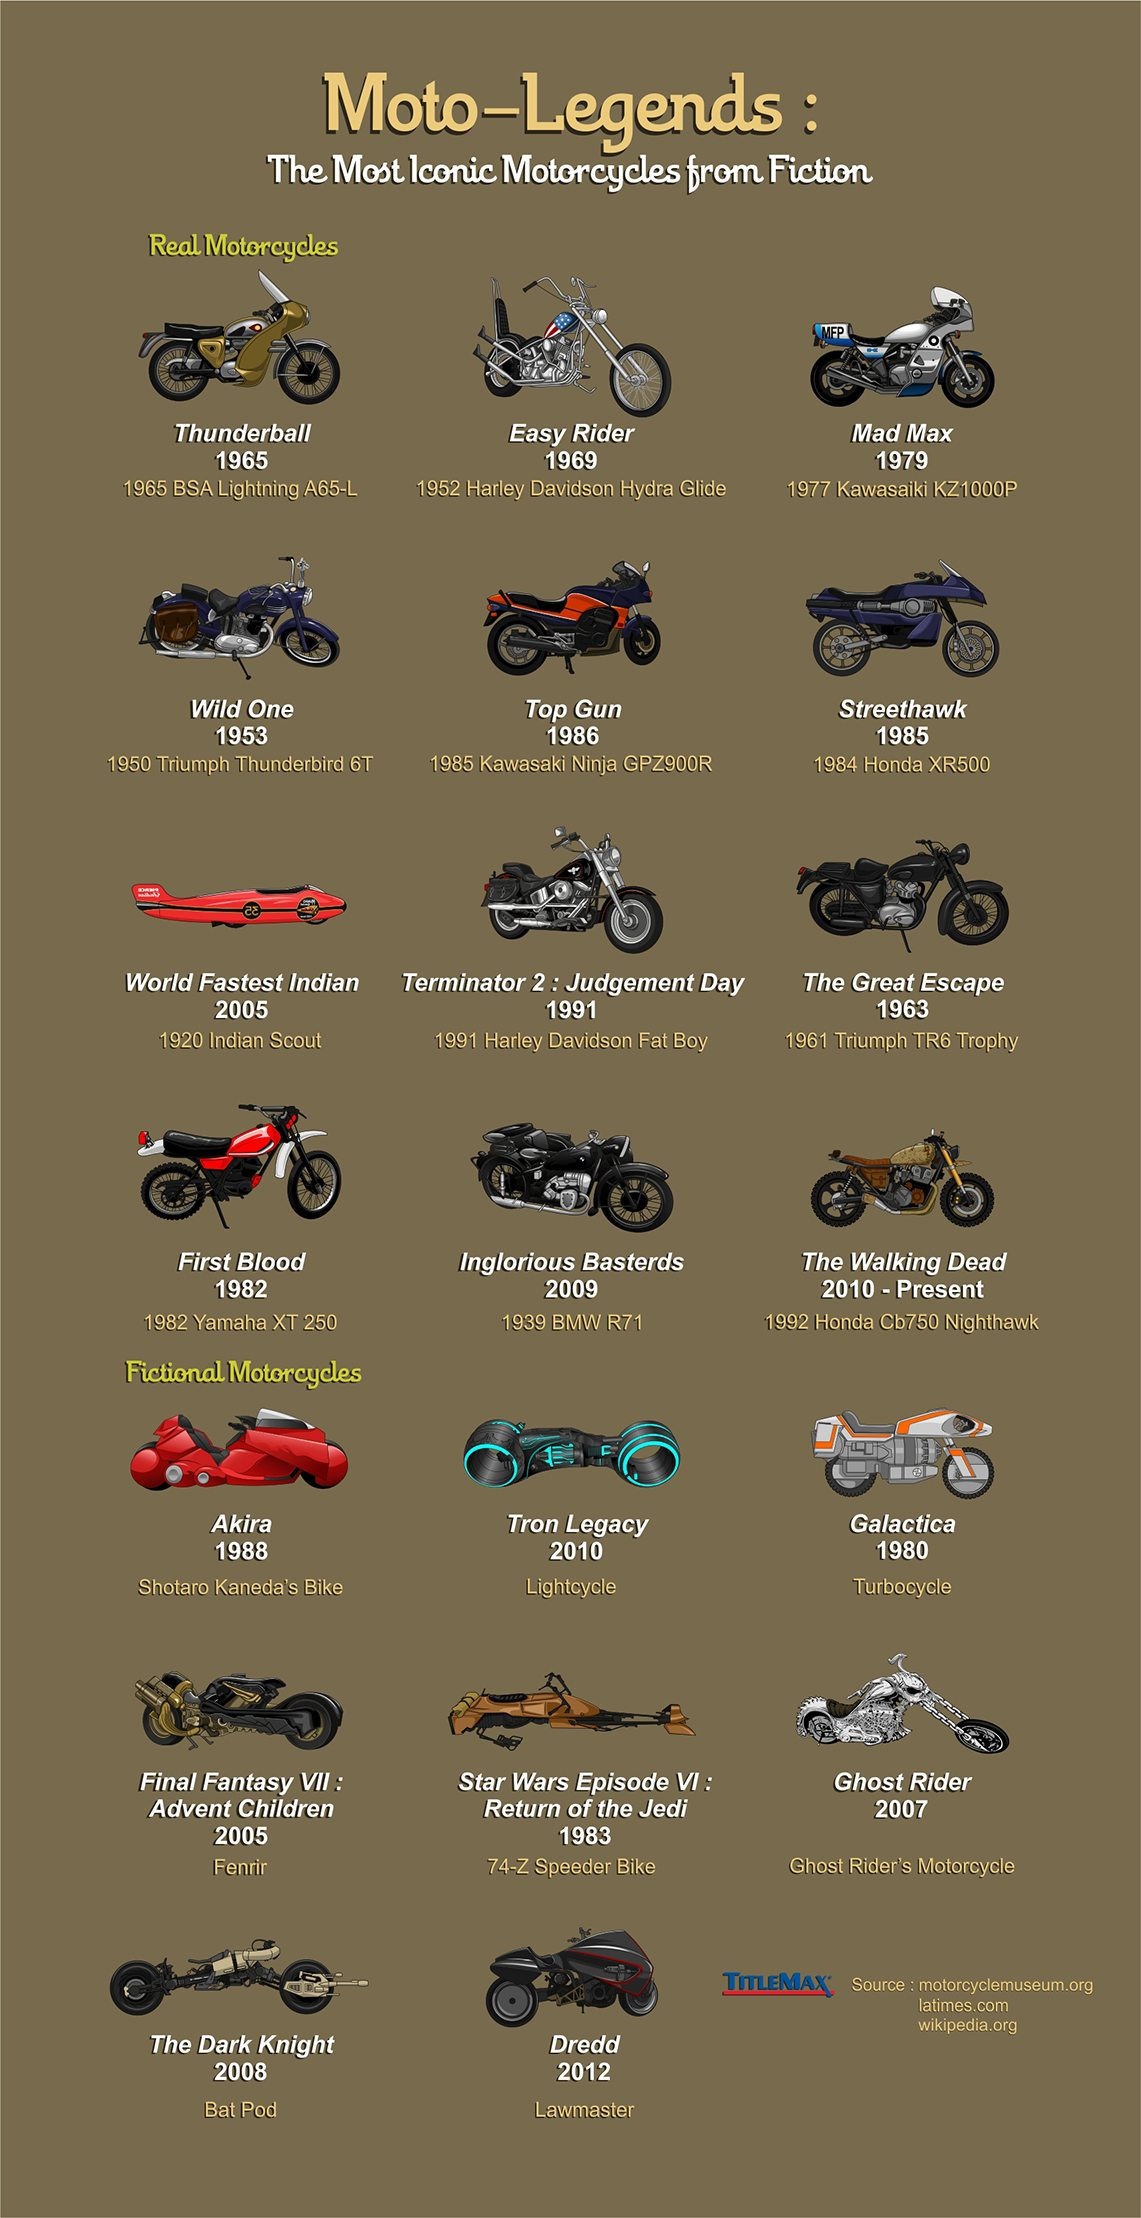 Legends on Two Wheels: Iconic Motorcycles from the Movies - Infographic